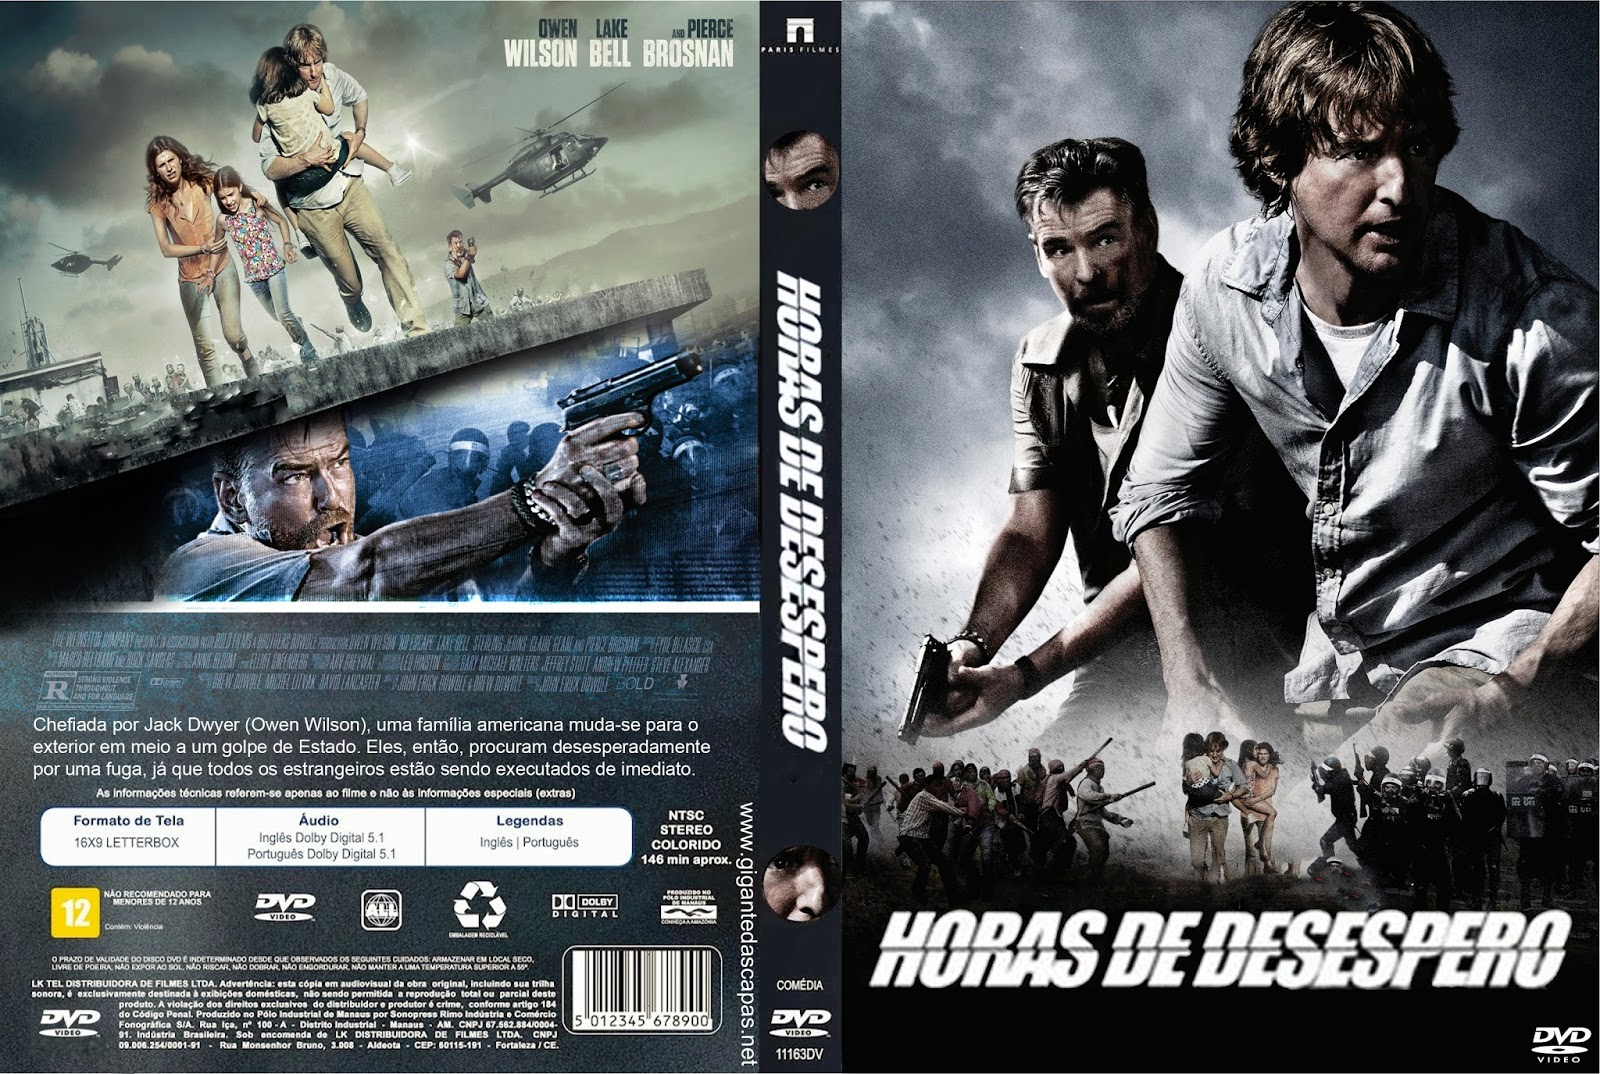 Download Horas de Desespero BDRip XviD Dual Áudio Horas 2Bde 2BDesespero 2B 25282015 2529